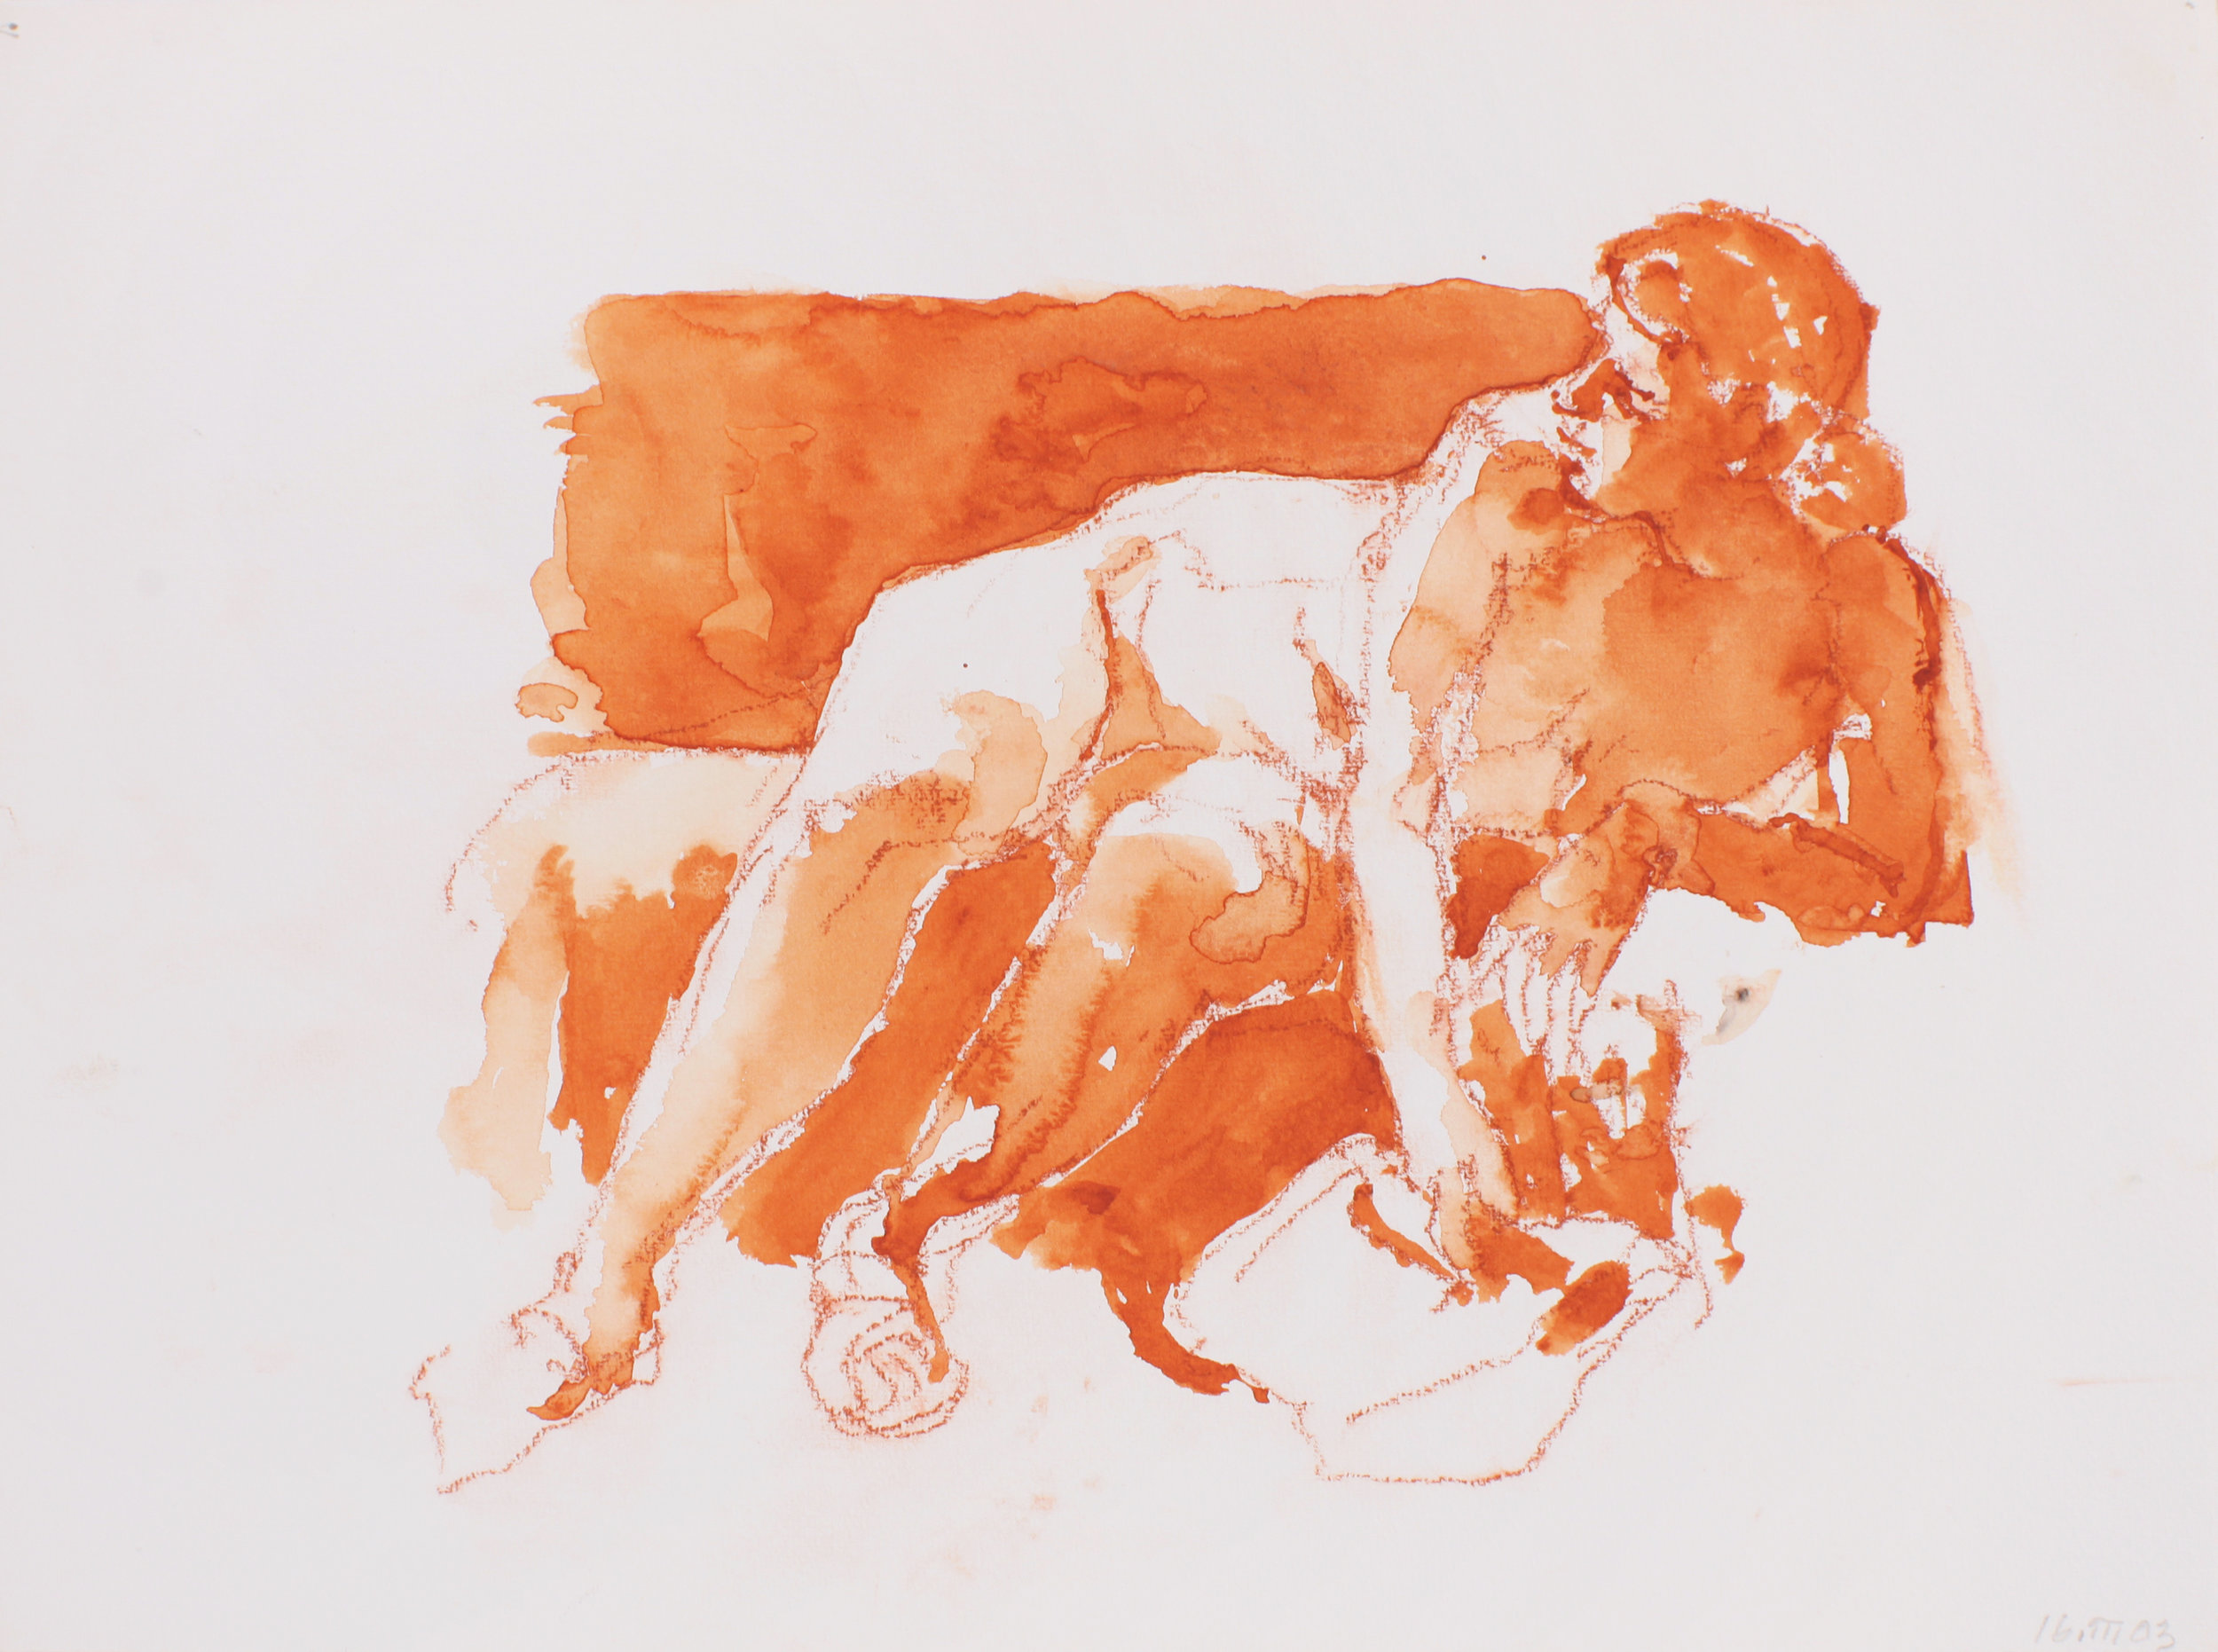 2003_Nude_on_Sofa_Holding_Purse_watercolour_on_paper_11x15in_28x38cm_WPF046.jpg